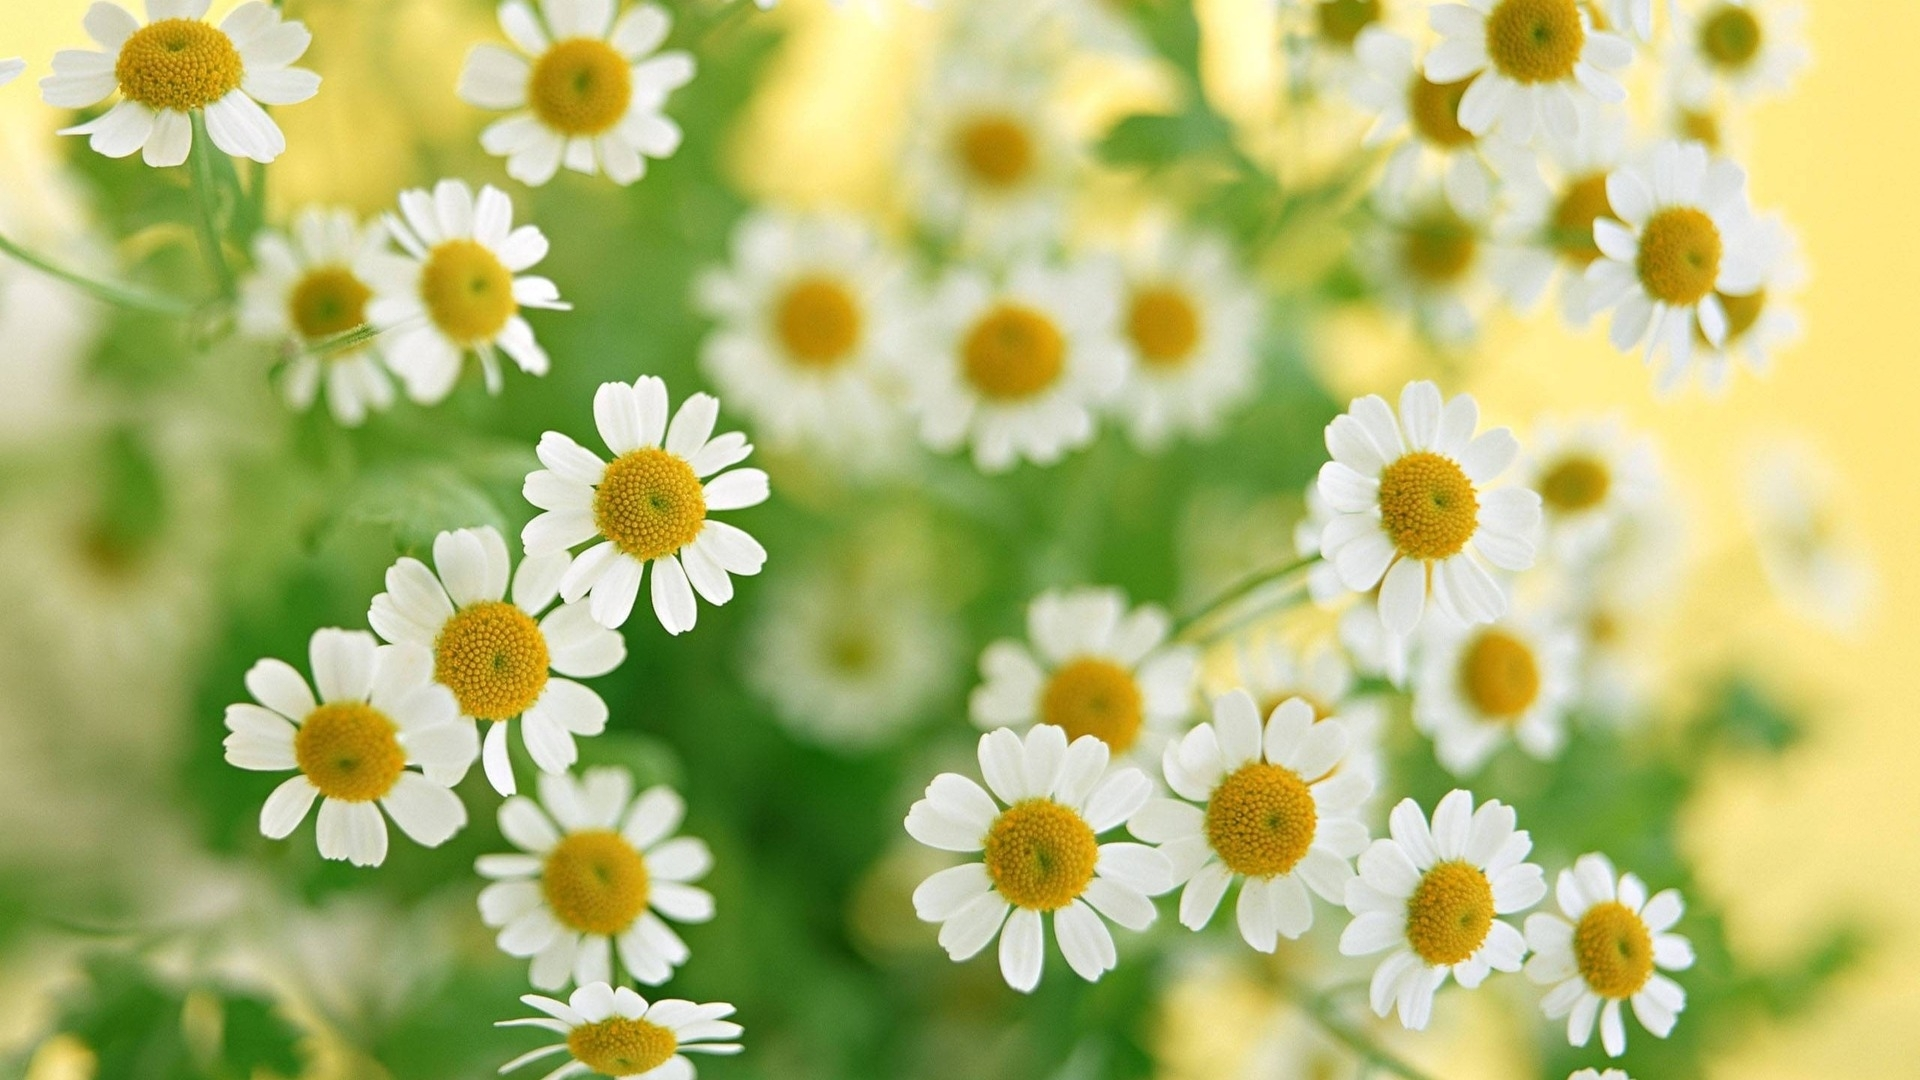 48093 download wallpaper Plants, Flowers, Camomile screensavers and pictures for free